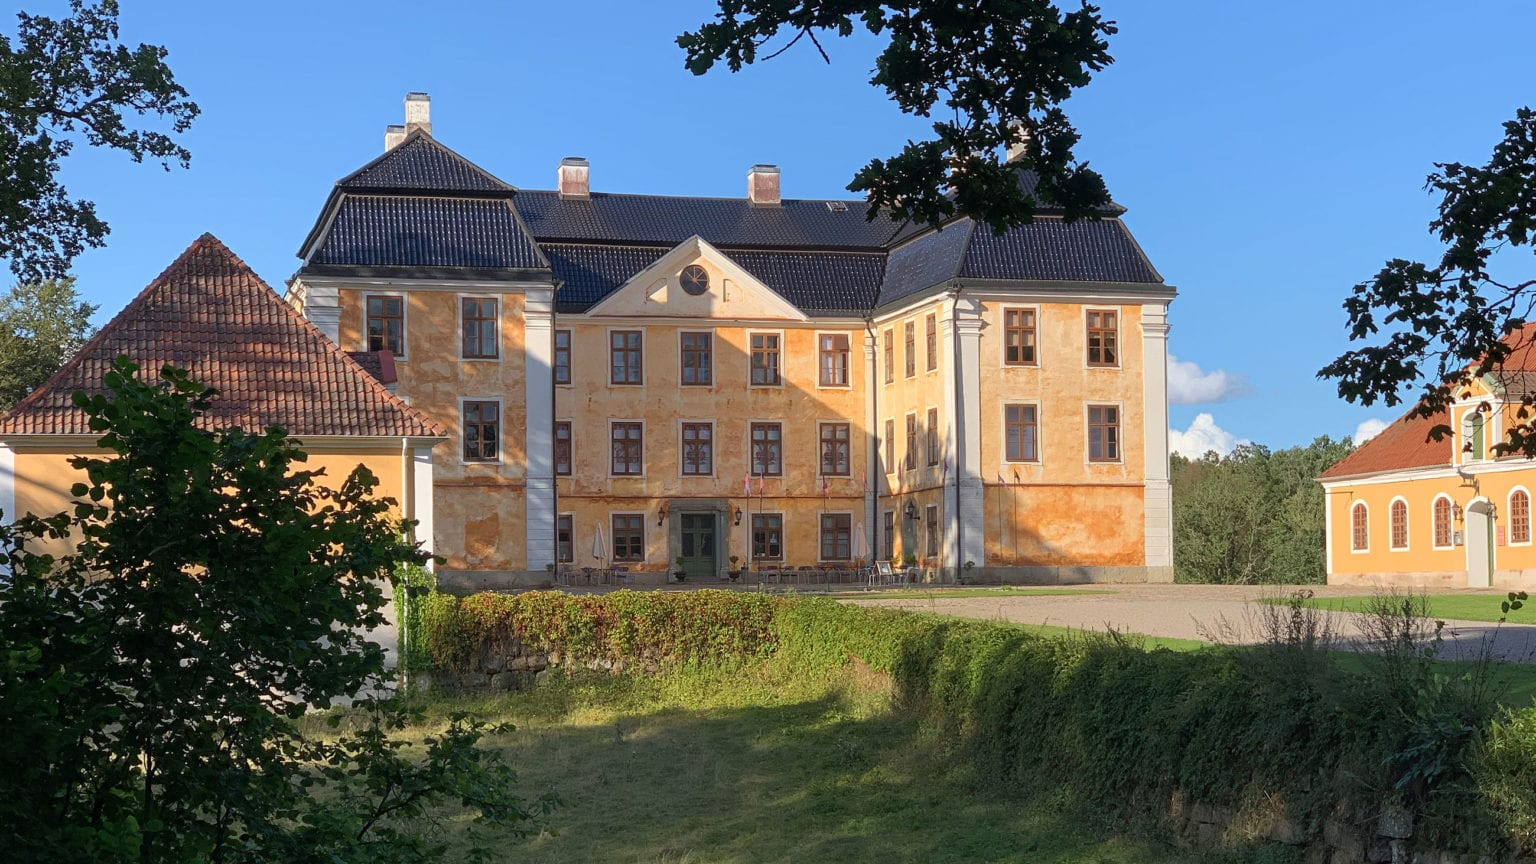 Culture in Österlen - Experience Christinehof and the 1700th century - a storytelling walk with Christina's Wänner in and around the castle that Christina Piper built. Christinehof Castle - Österlen